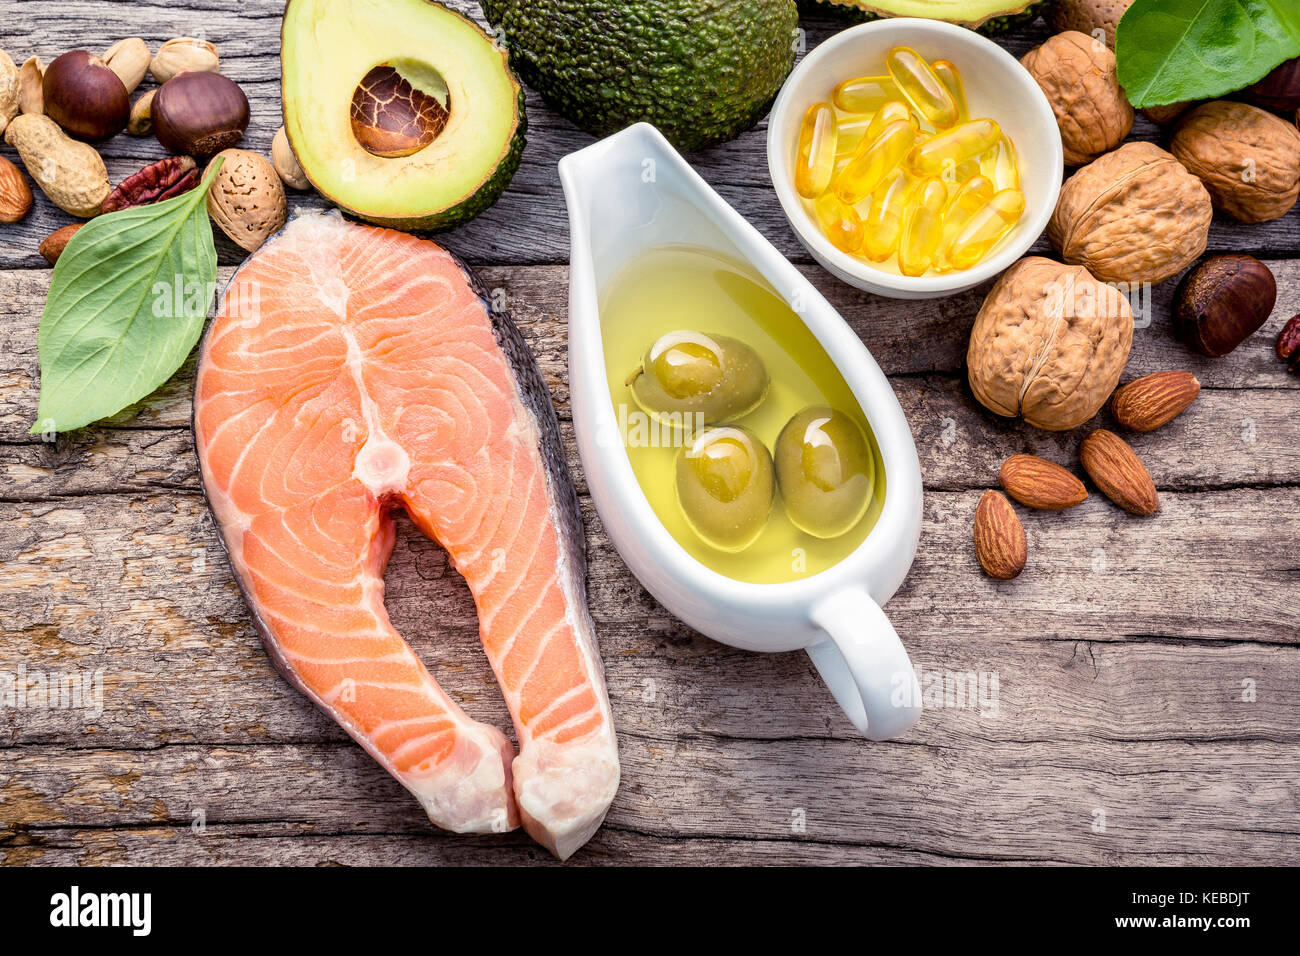 Selection food sources of omega 3 and unsaturated fats. Superfood high vitamin e and dietary fiber for healthy food. Stock Photo